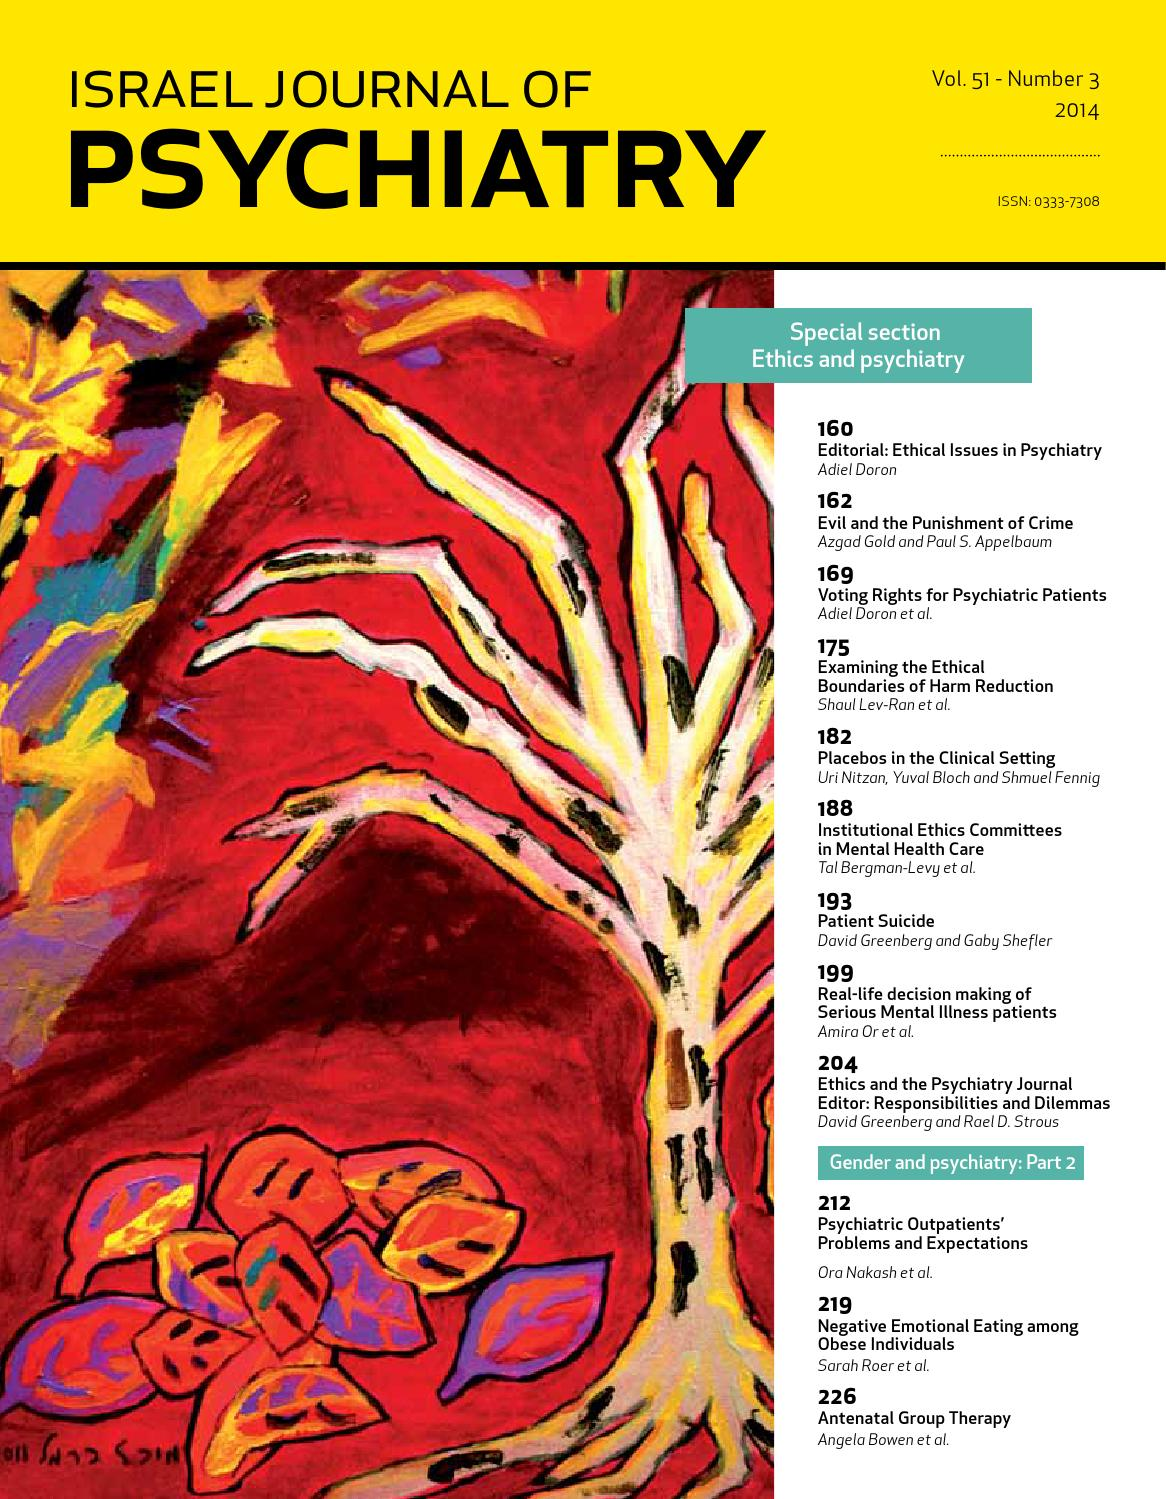 Ijp israel journal of psychiatry vol 51 issue 3 by medic issuu fandeluxe Image collections